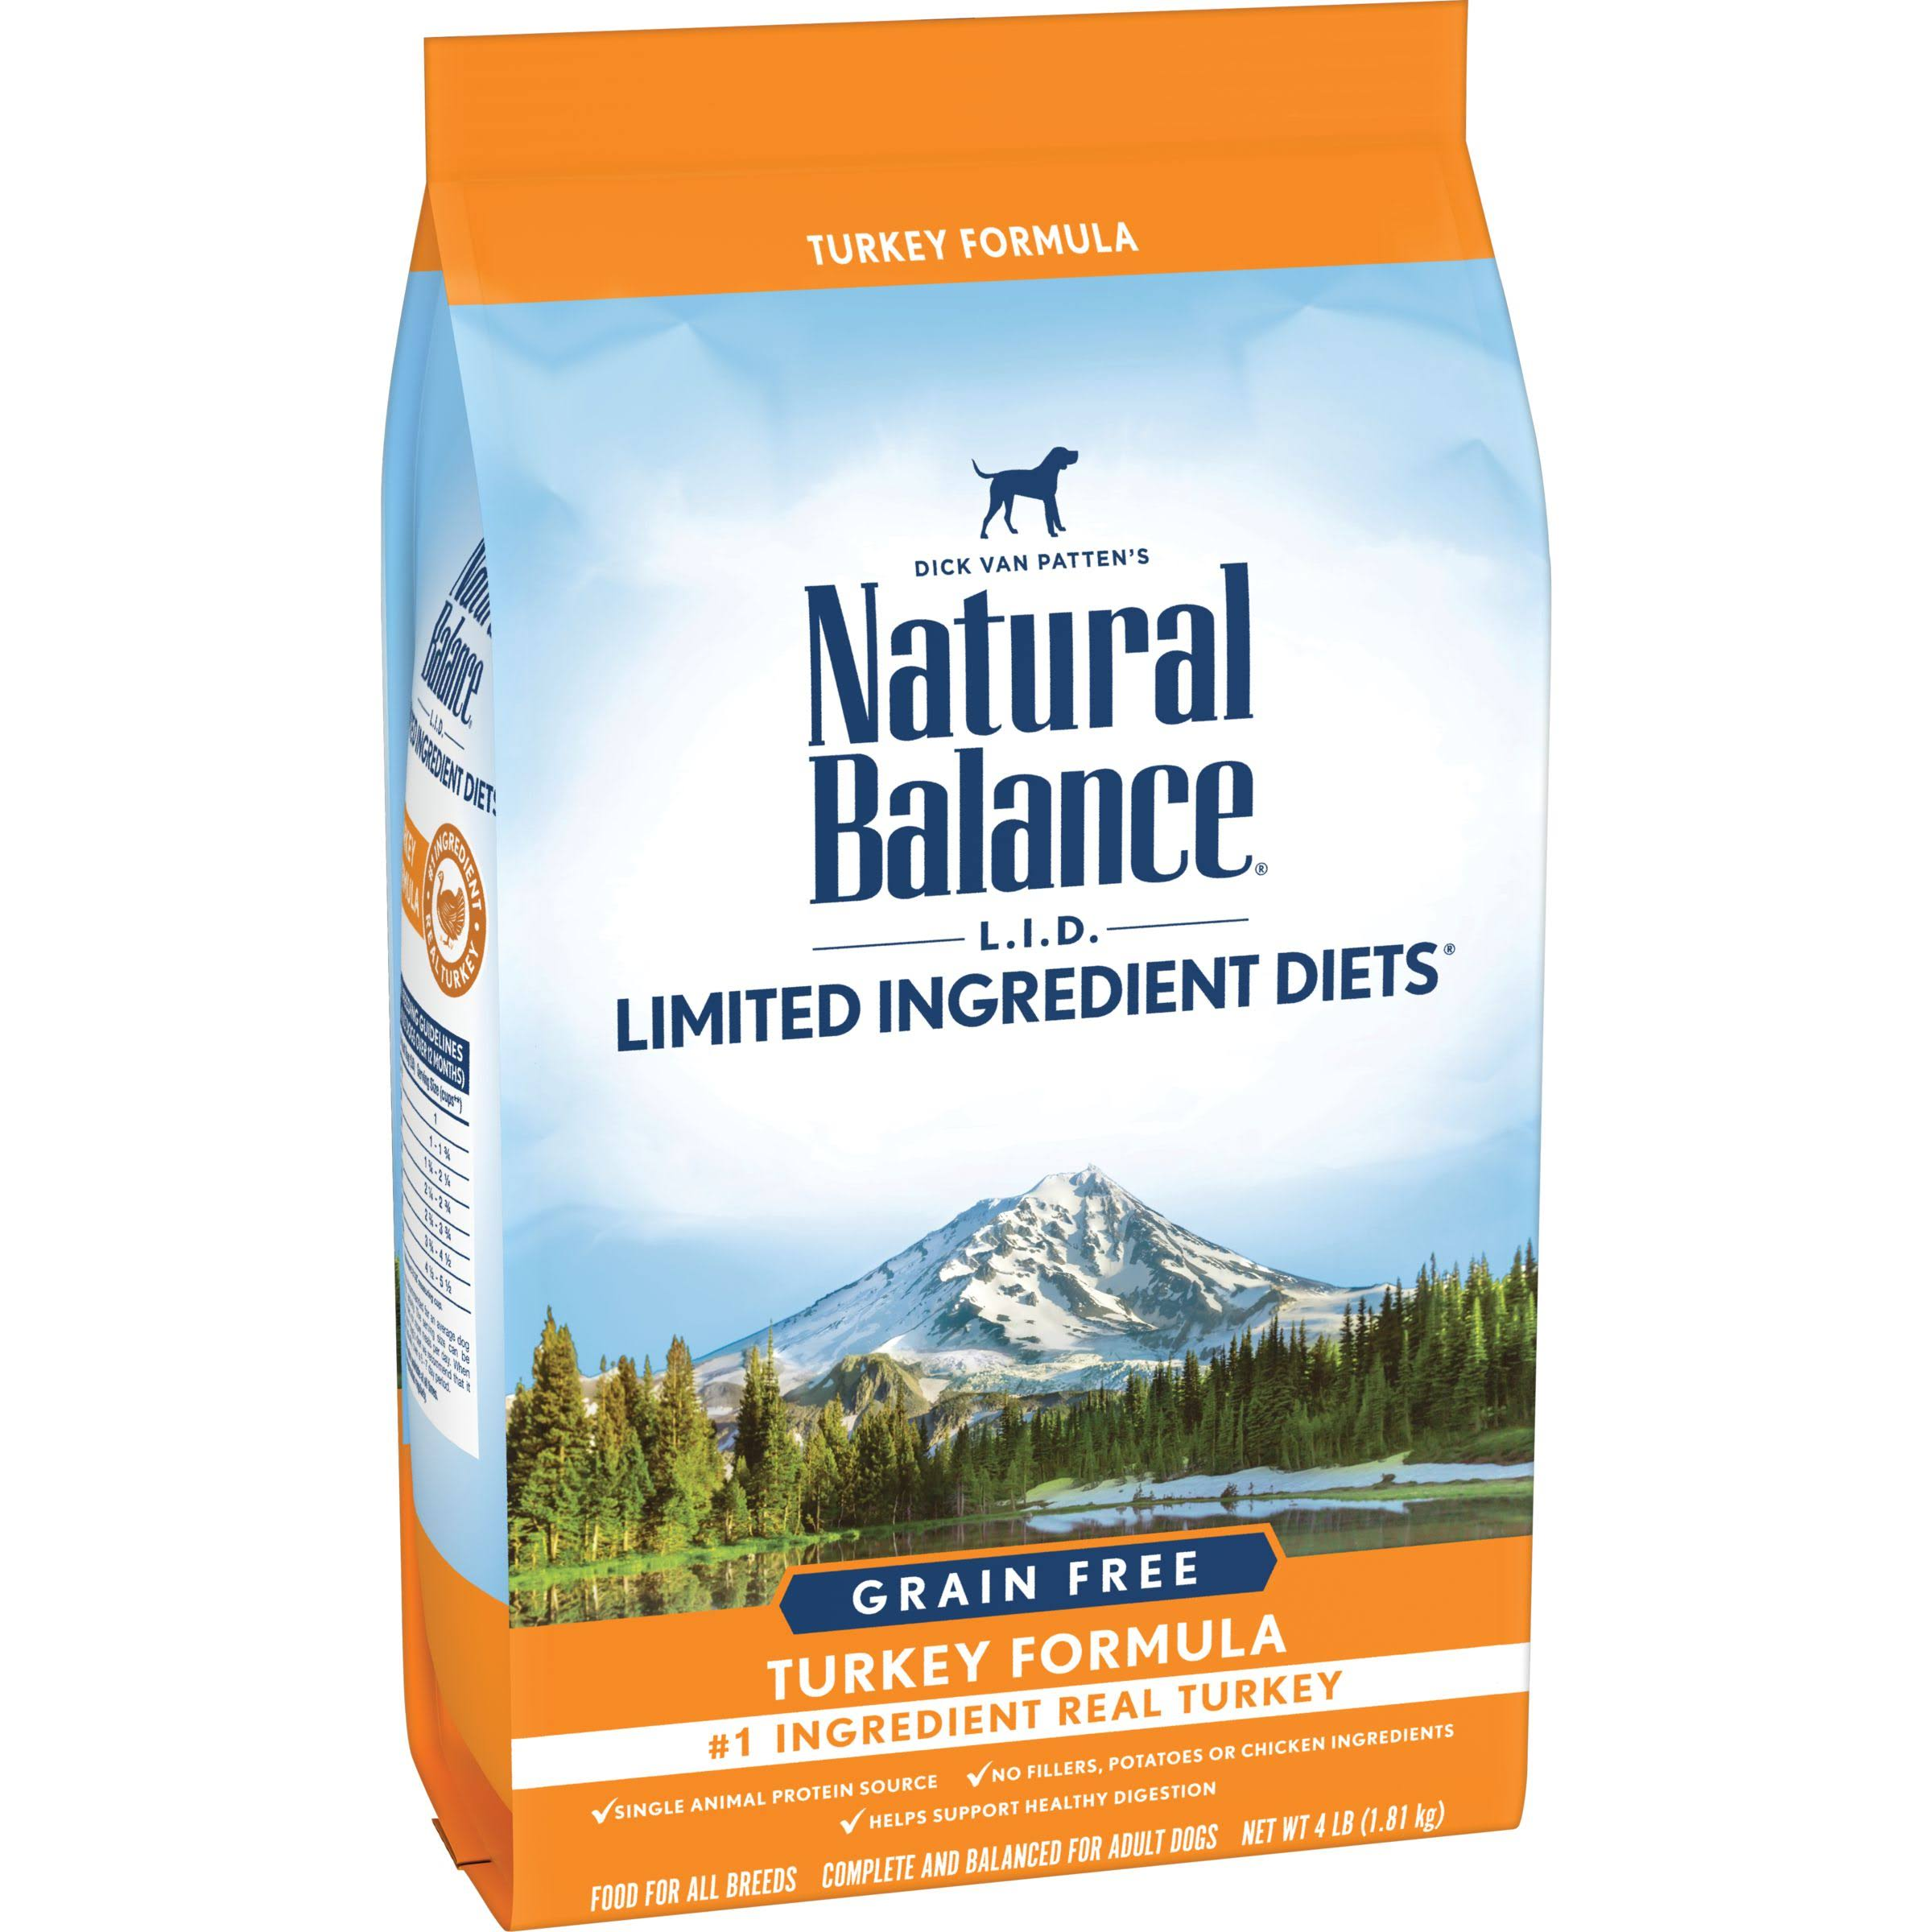 Natural Balance Limited Ingredient Diets High Protein Dry Dog Food - Turkey Formula, 4lbs